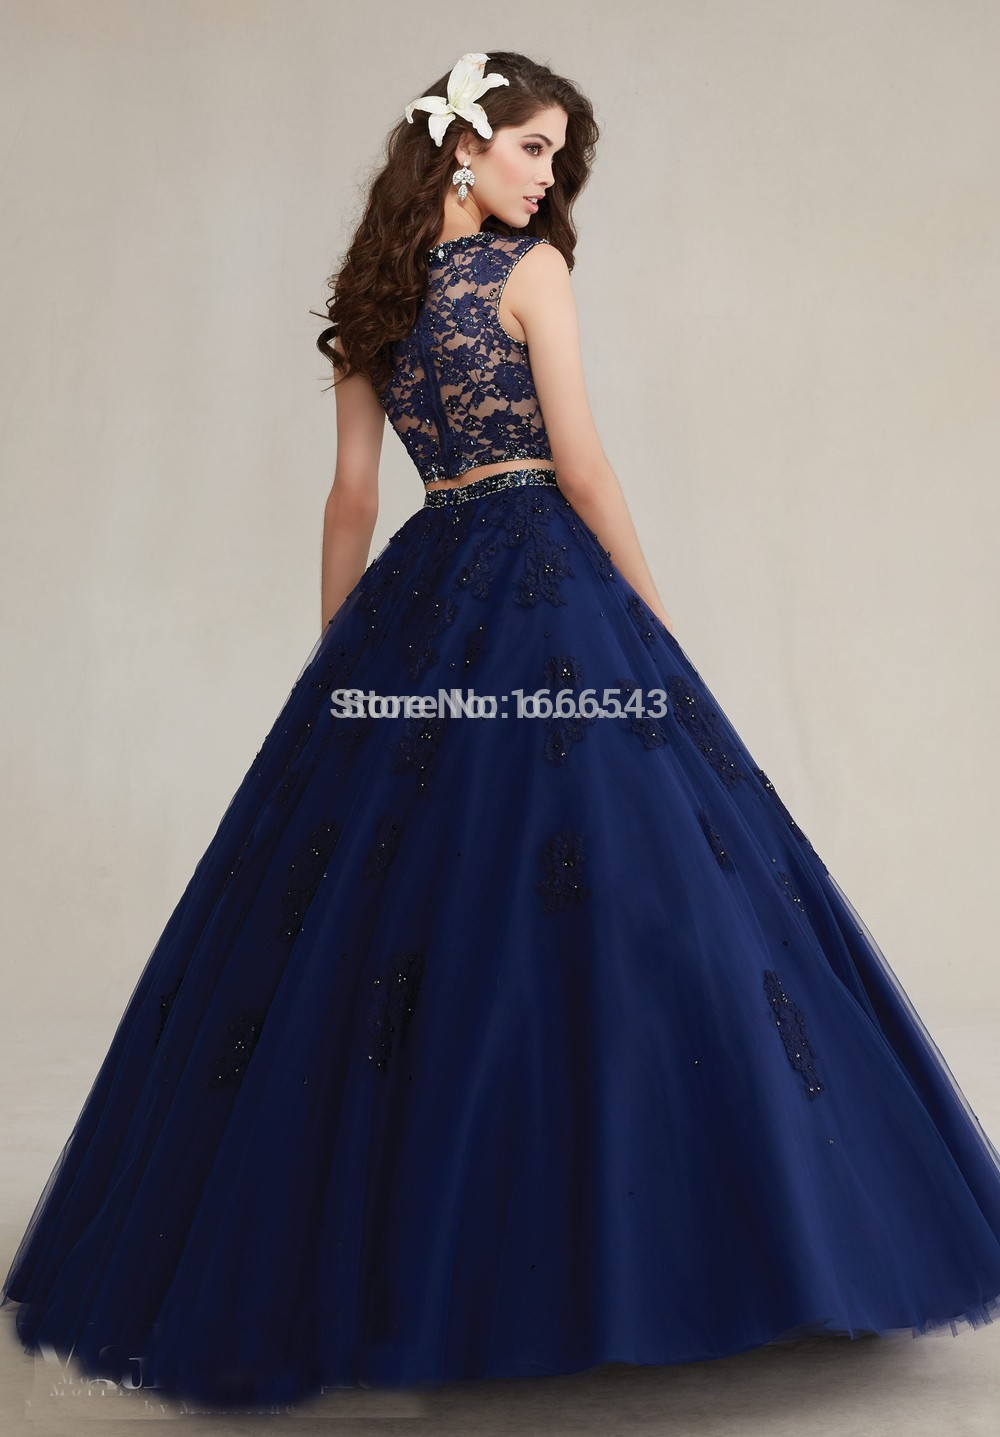 Beaded Lace Appliques Prom Dress Navy Blue Sweet 16 Dress 2 Piece ...